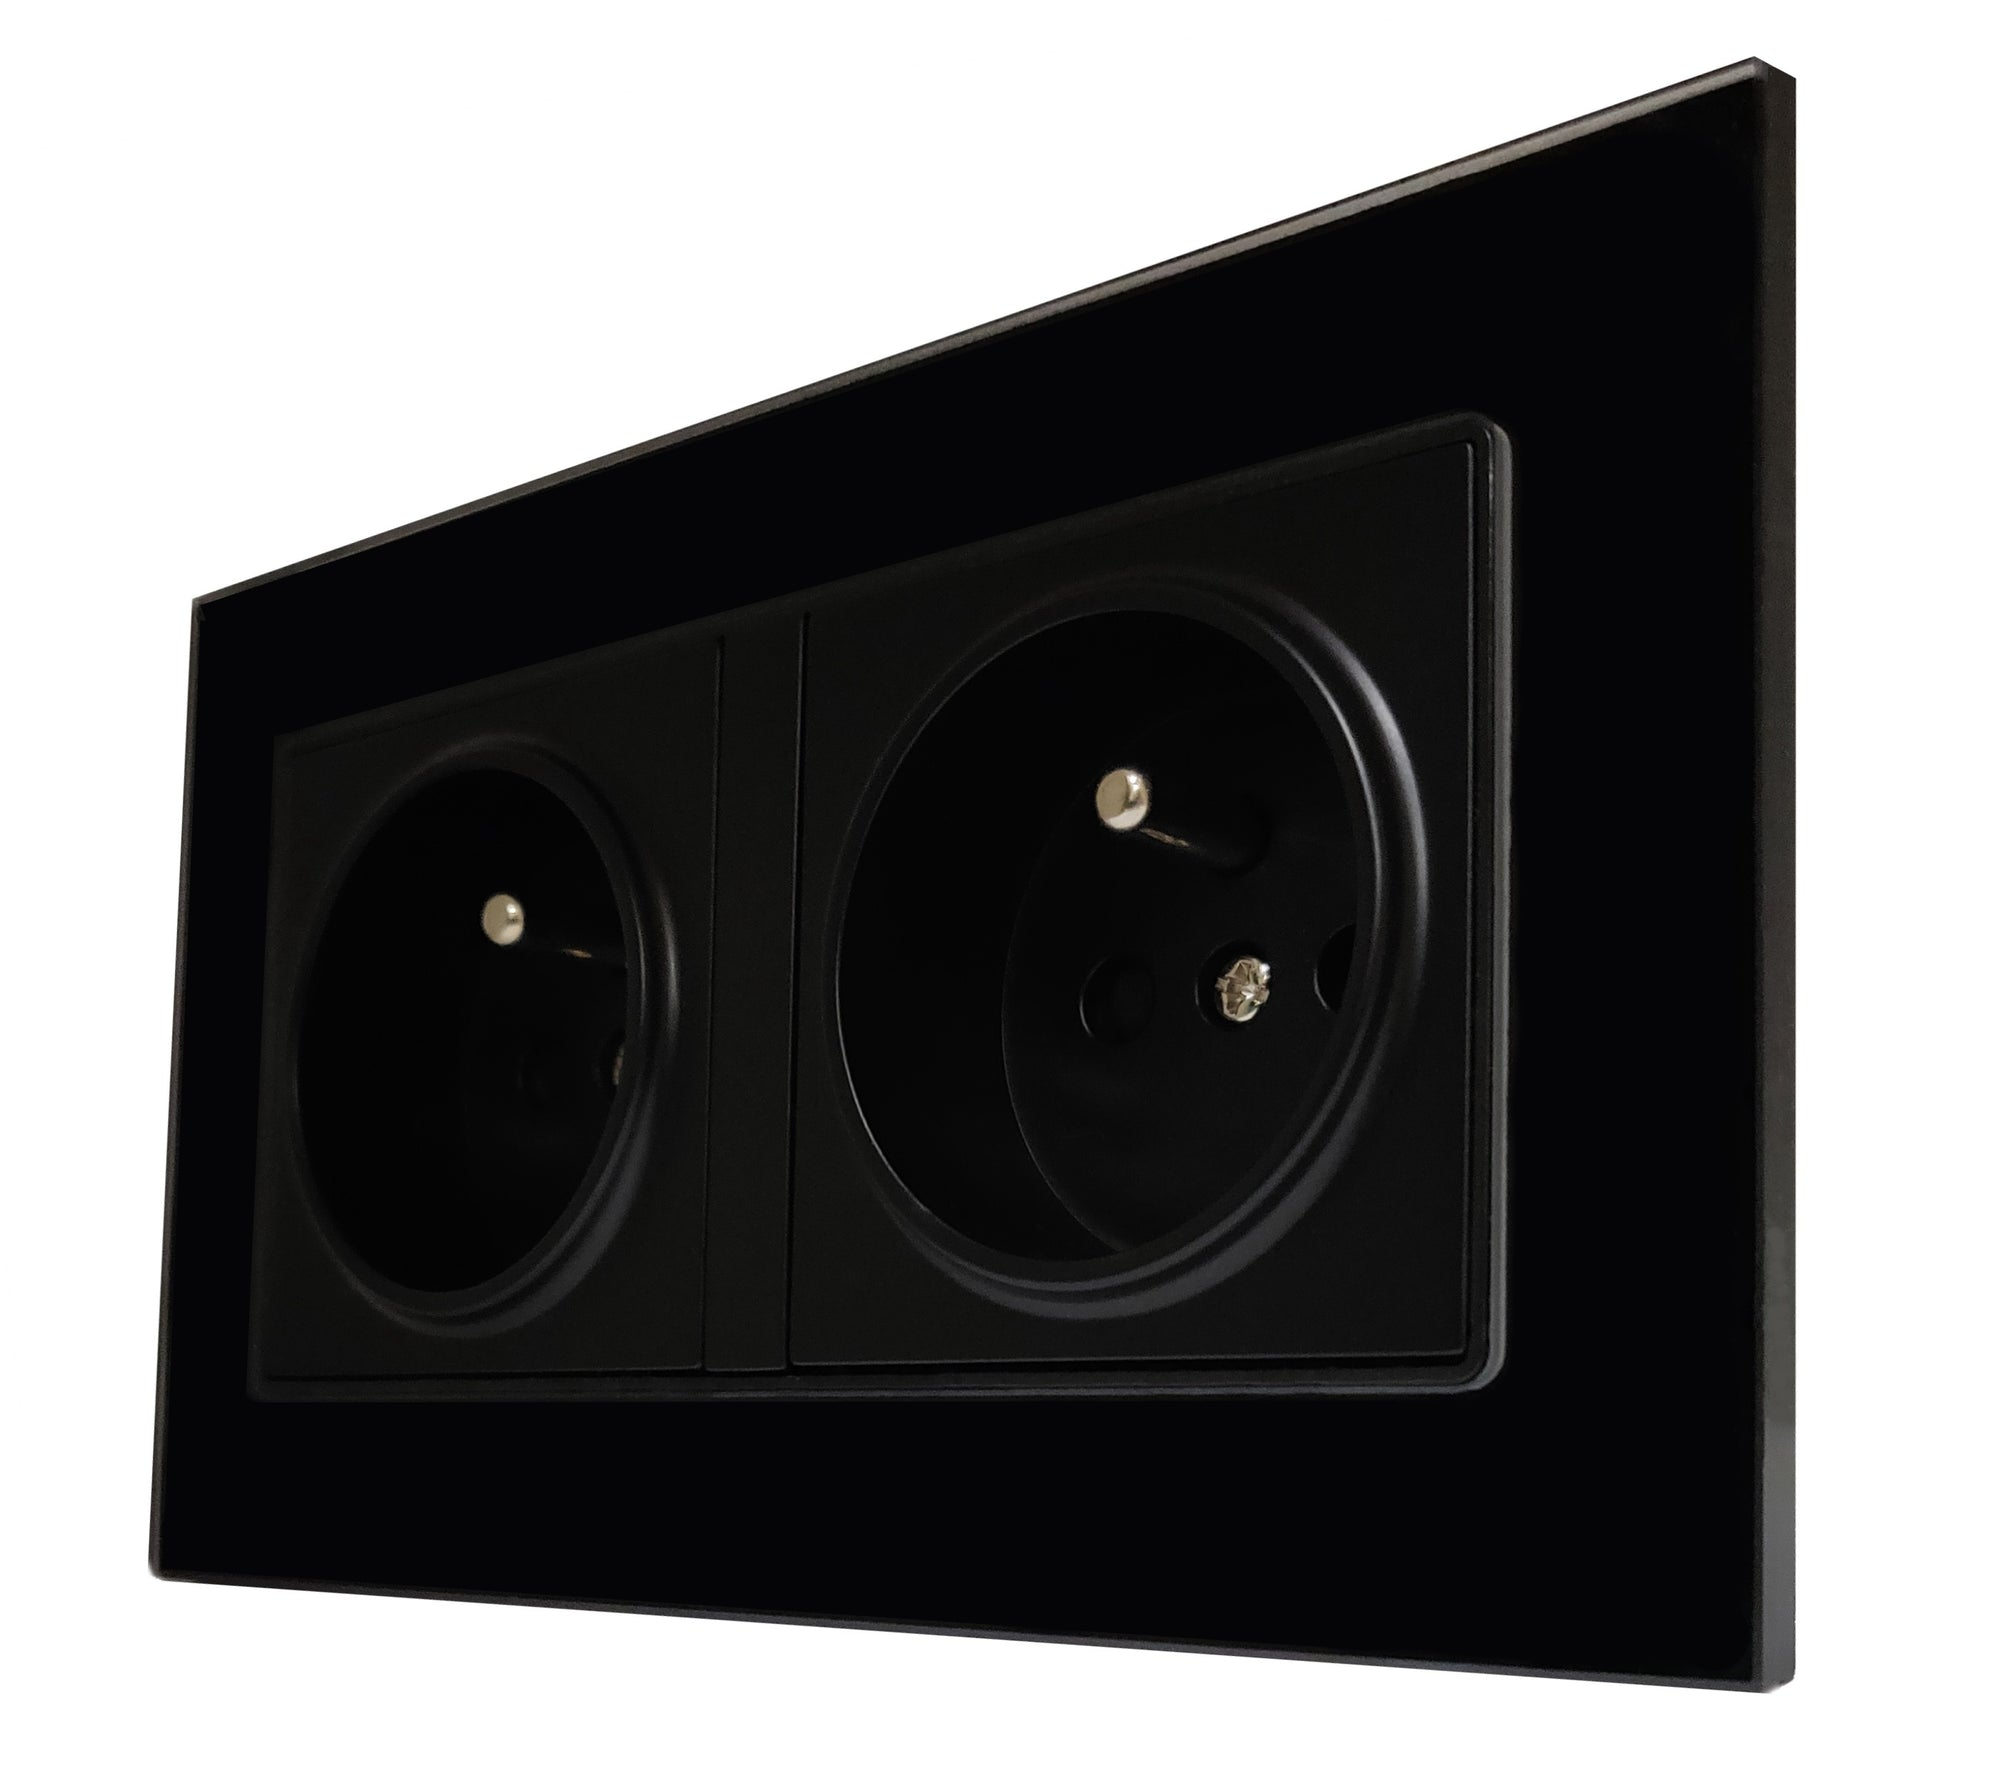 Double French EU 16A 2-Pin AC Wall Power Socket in Black Glass Frame & Black Centre